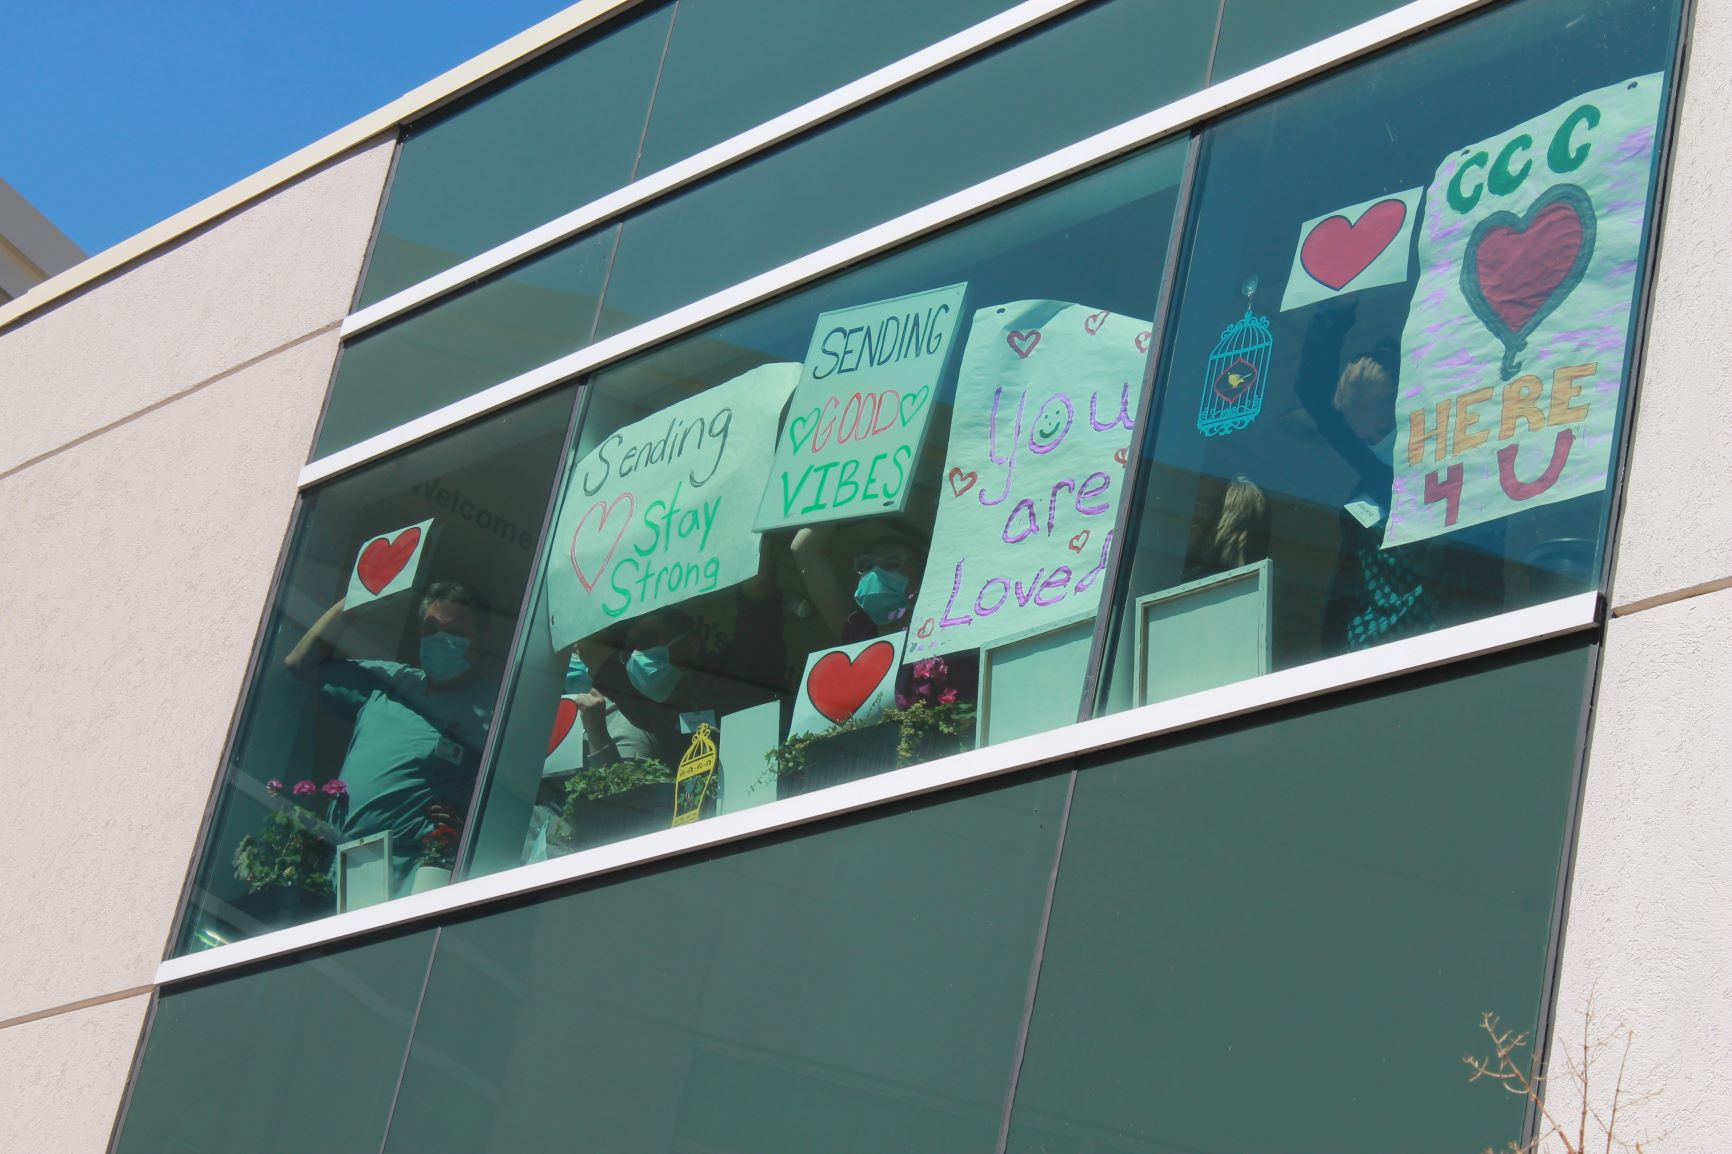 Residents inside SJV building holding signs with positive messages in the windows